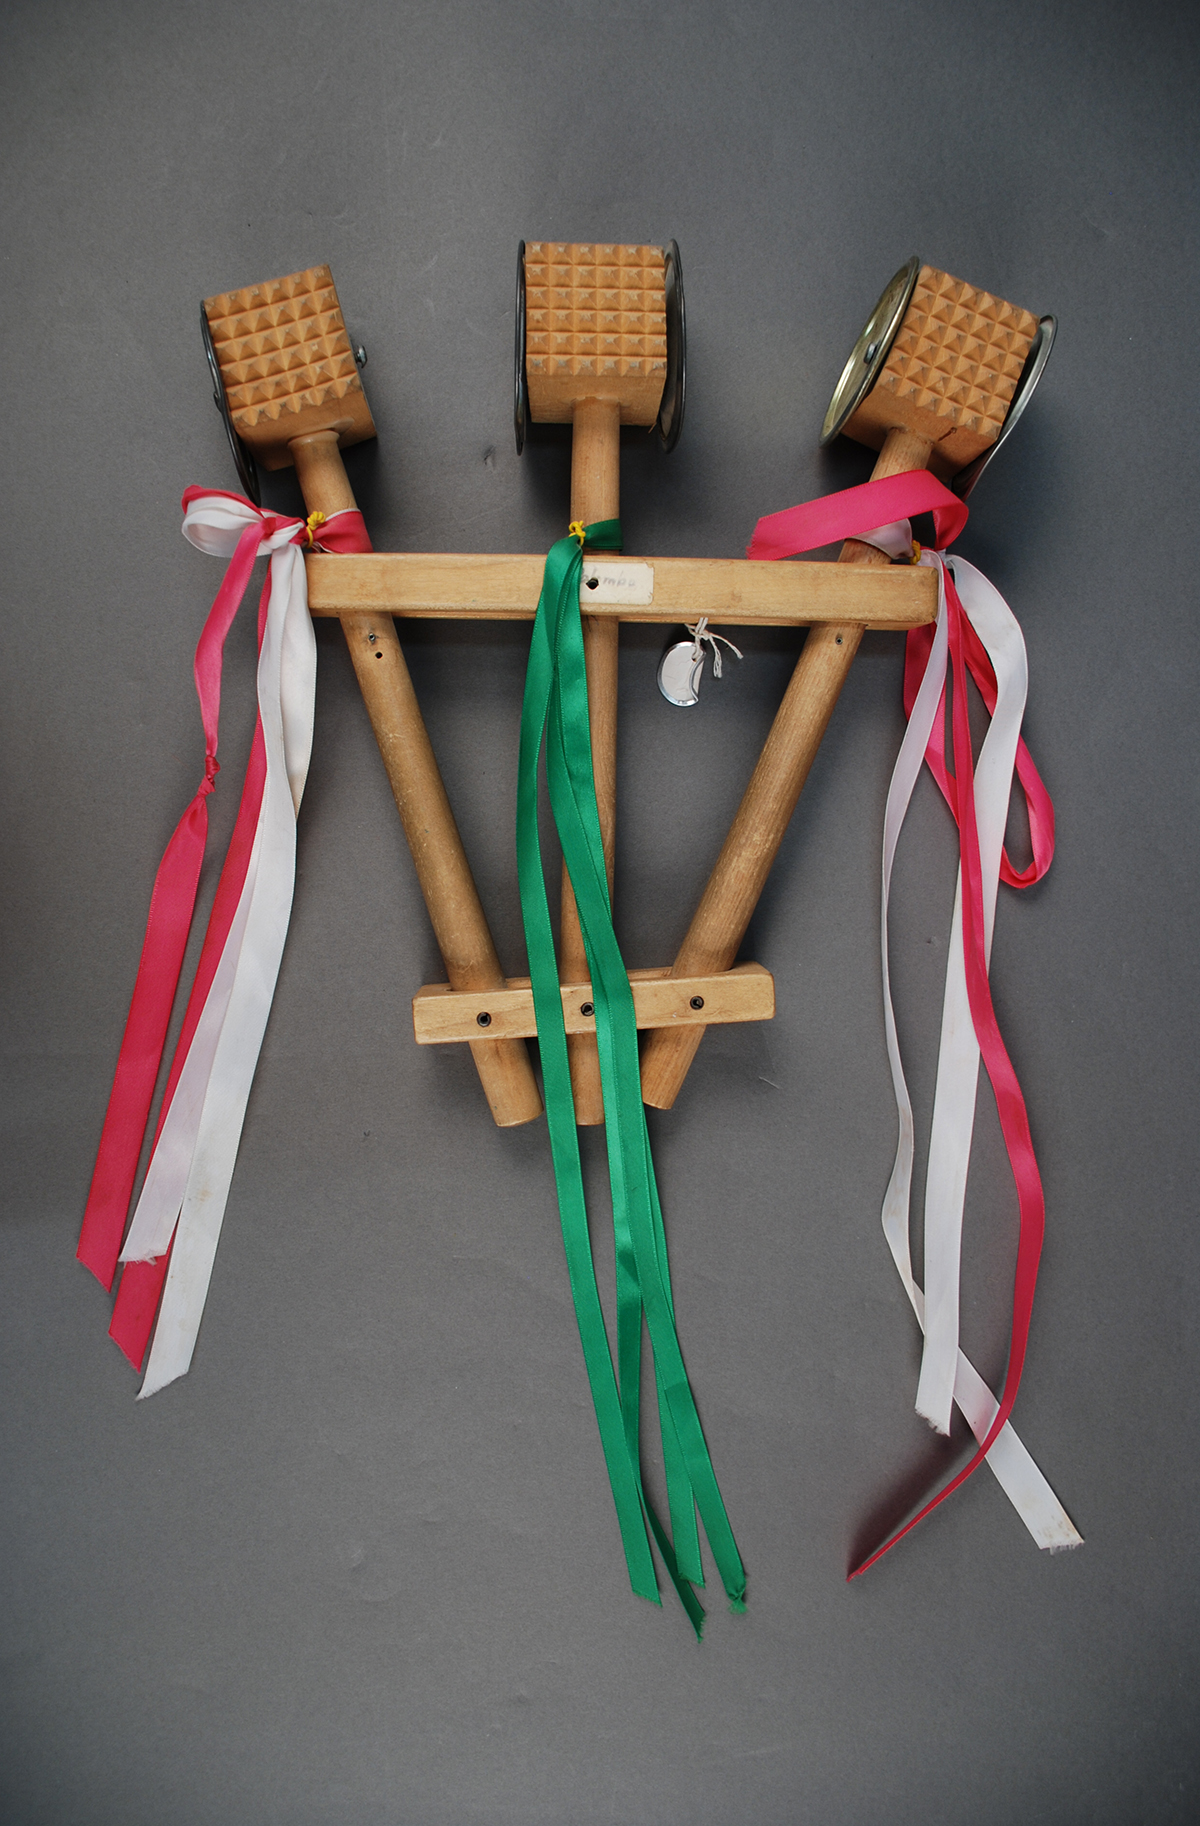 Dominic Palombo made this homemade triccheballache, a Southern Italian instrument made of wooden mallets that clack in a rhythm, 1980s. Heinz History Center Collections, gift of Anna Marie Fiori.